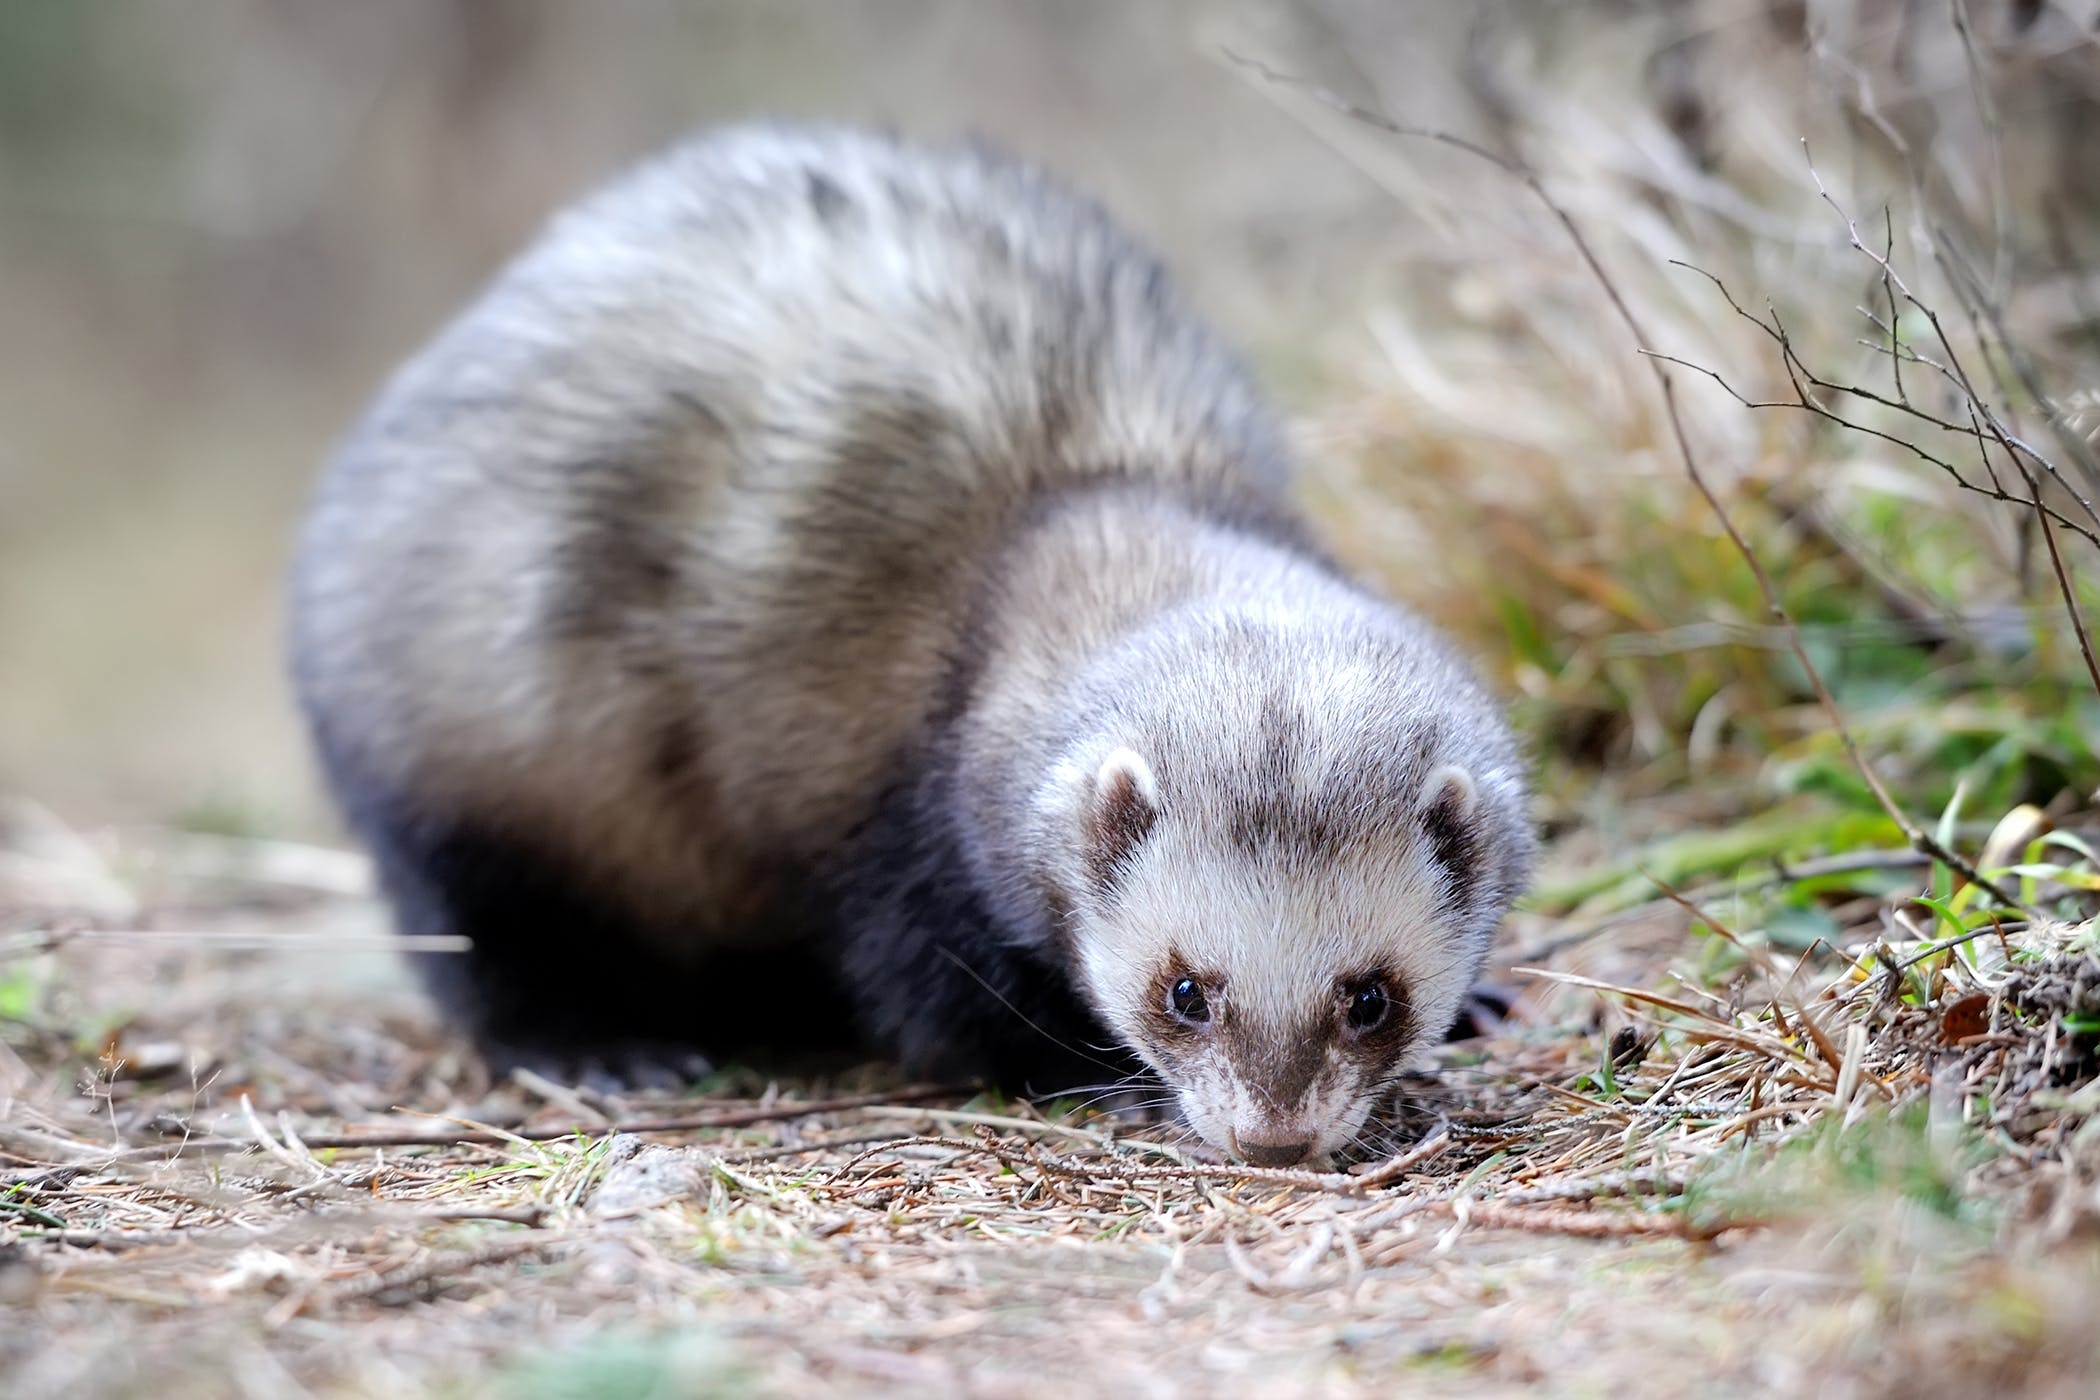 How to Diagnose Heart Disease in Ferrets